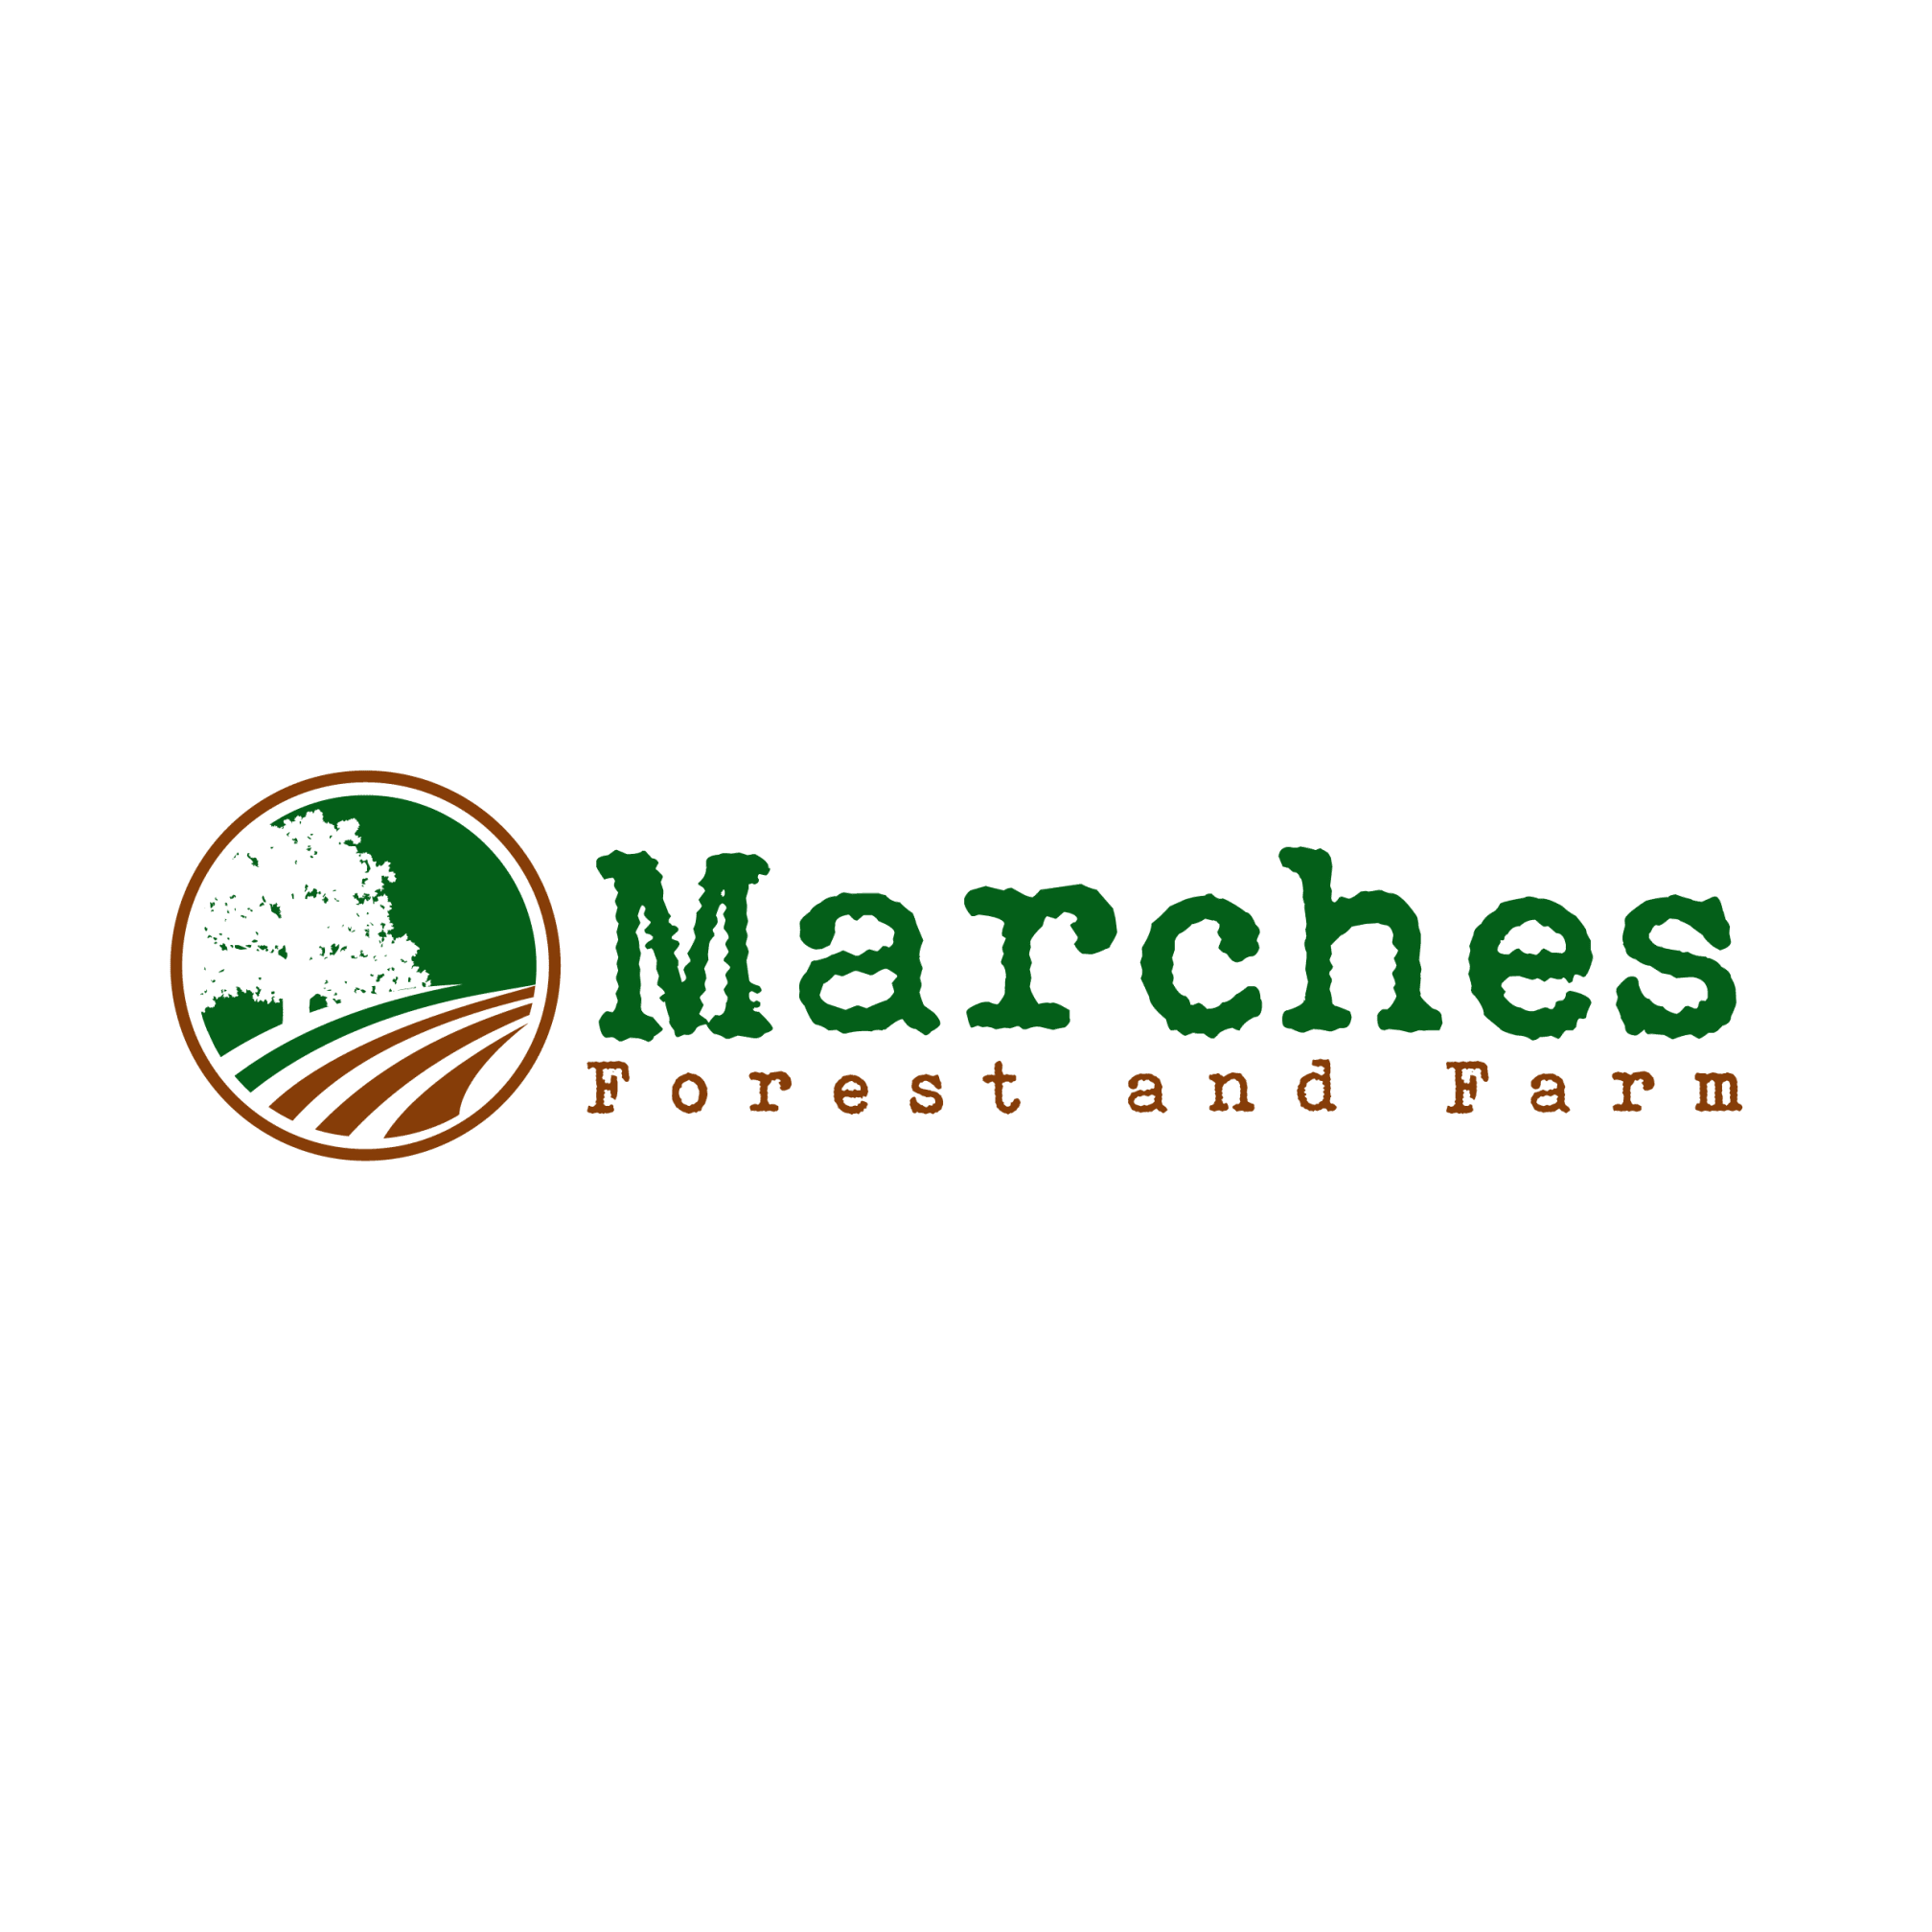 Marches Forest & Farm - Kington, Herefordshire HR5 3RY - 07425 603696 | ShowMeLocal.com